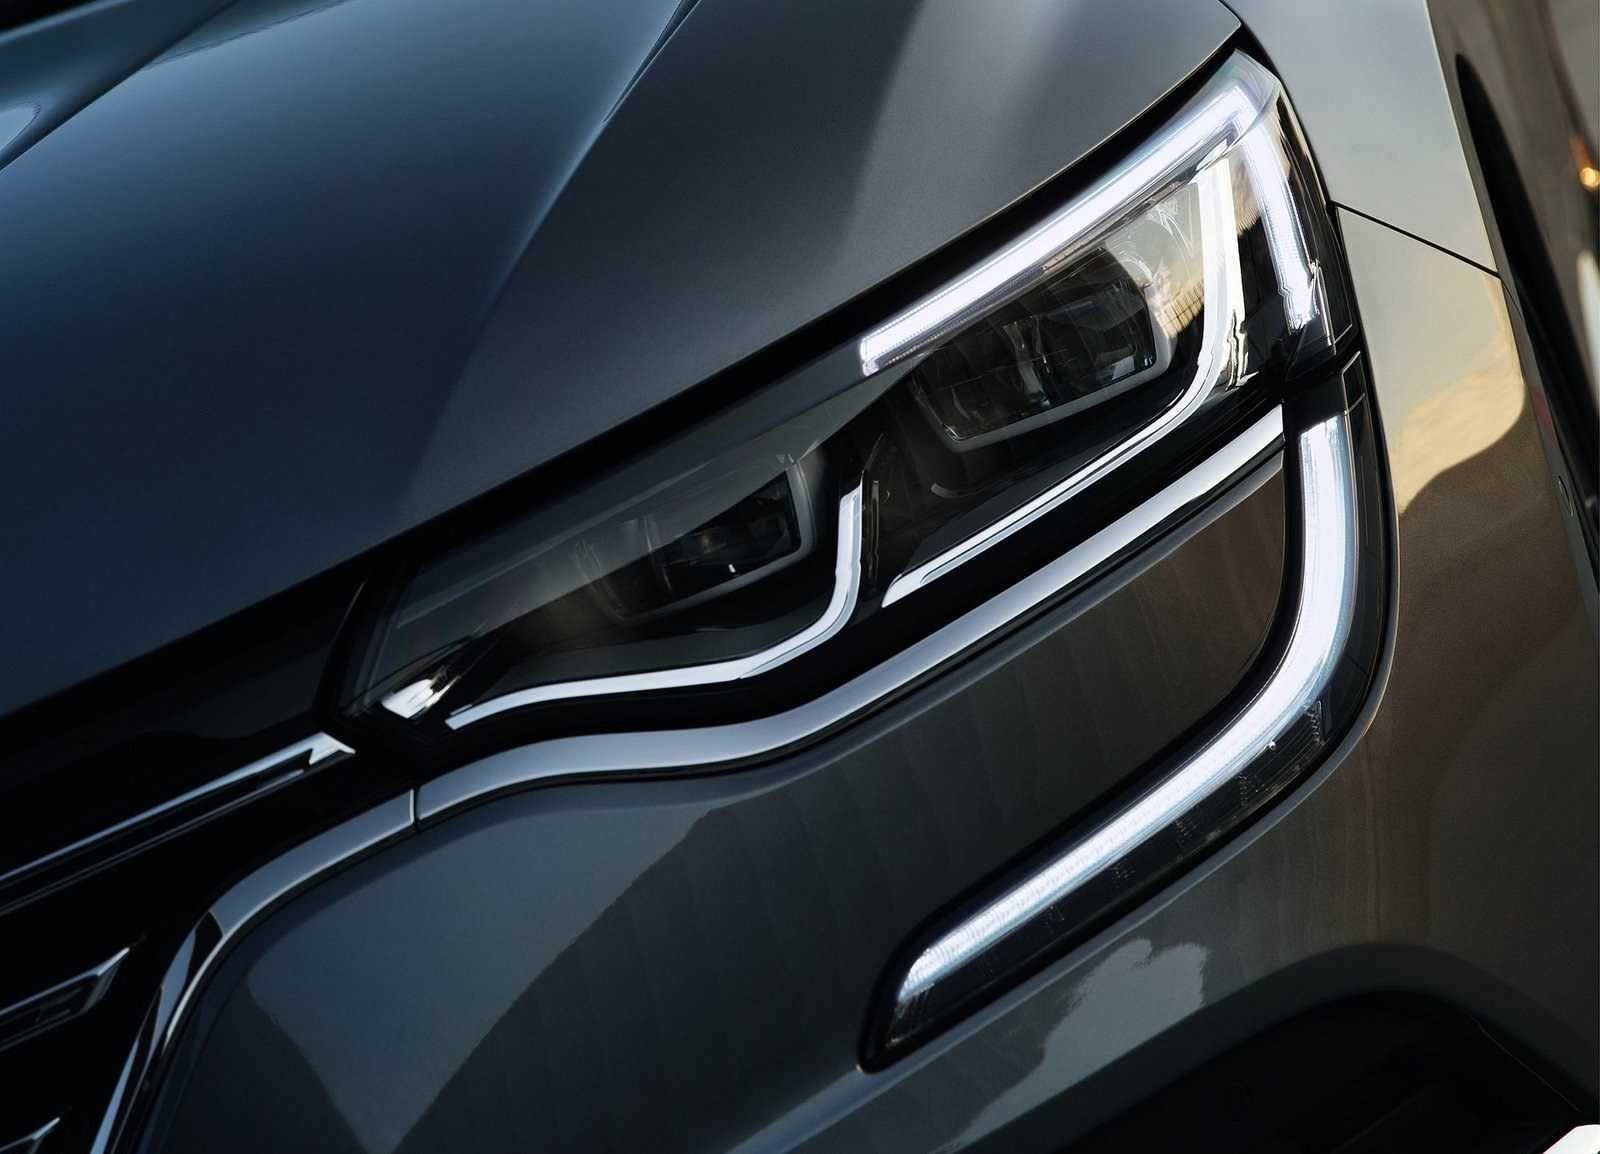 2016 Renault Talisman Headlamp Details (Photo 8 of 14)